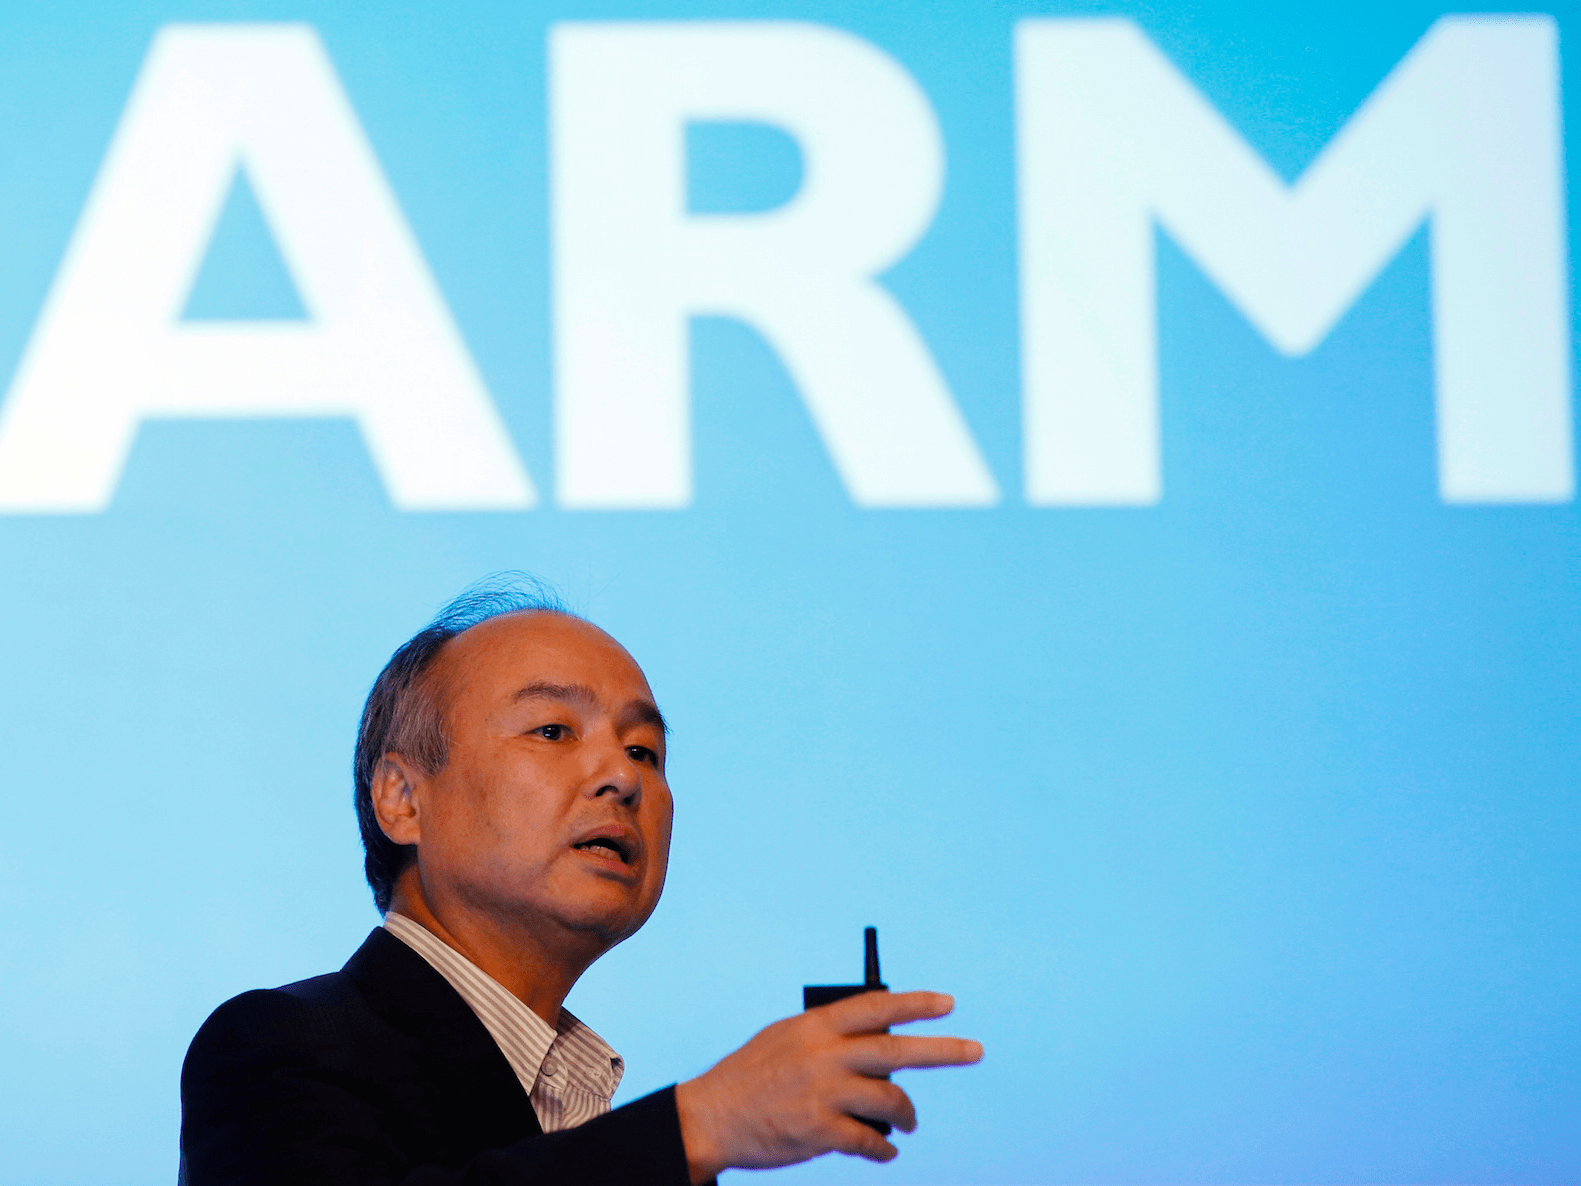 Apple would be considering investing $1 billion in a Softbank technology investment fund